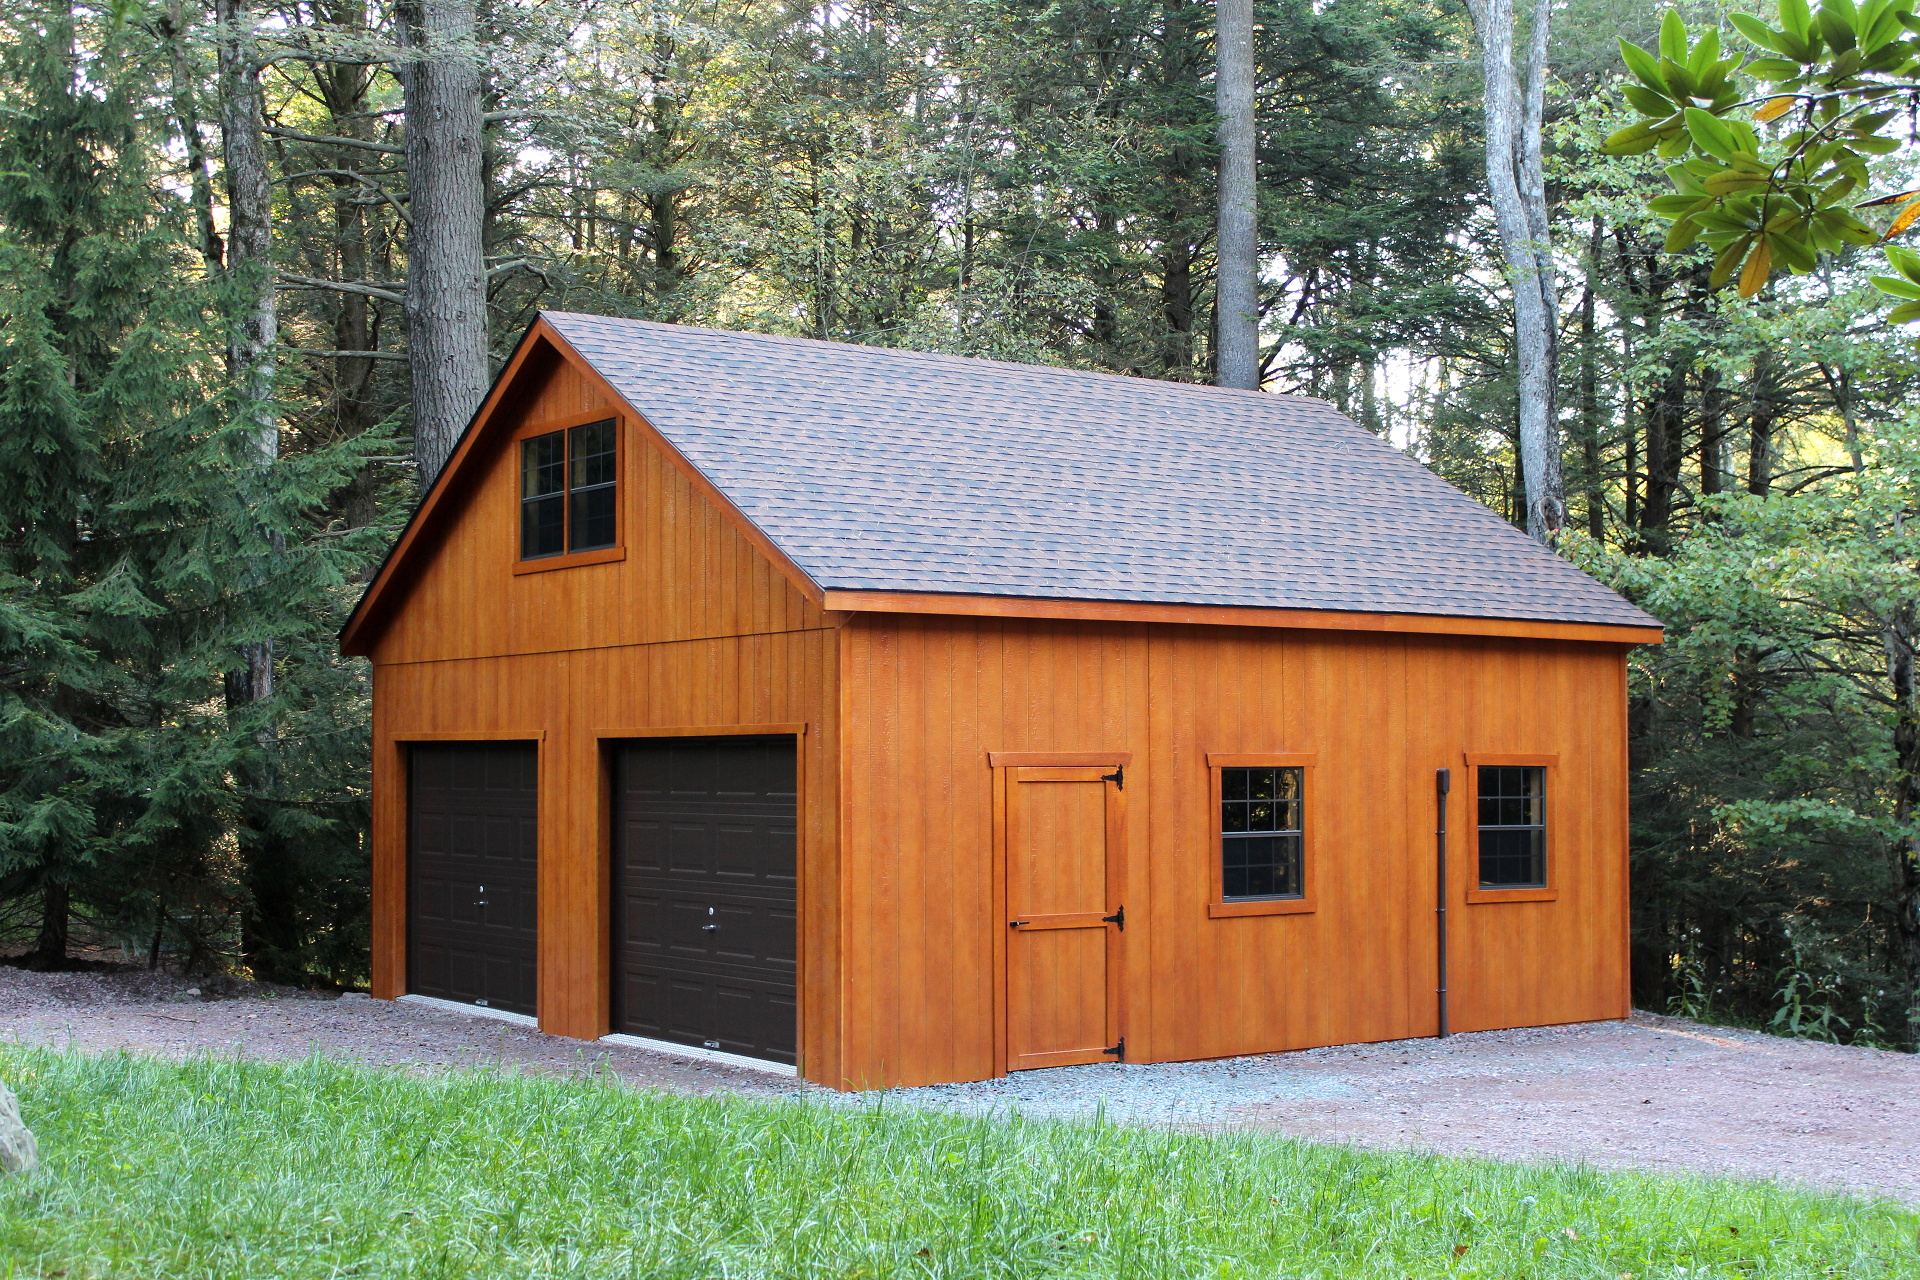 Detached Garage Ideas 12 X 24 Barn Gambrel Shed Projectdiy